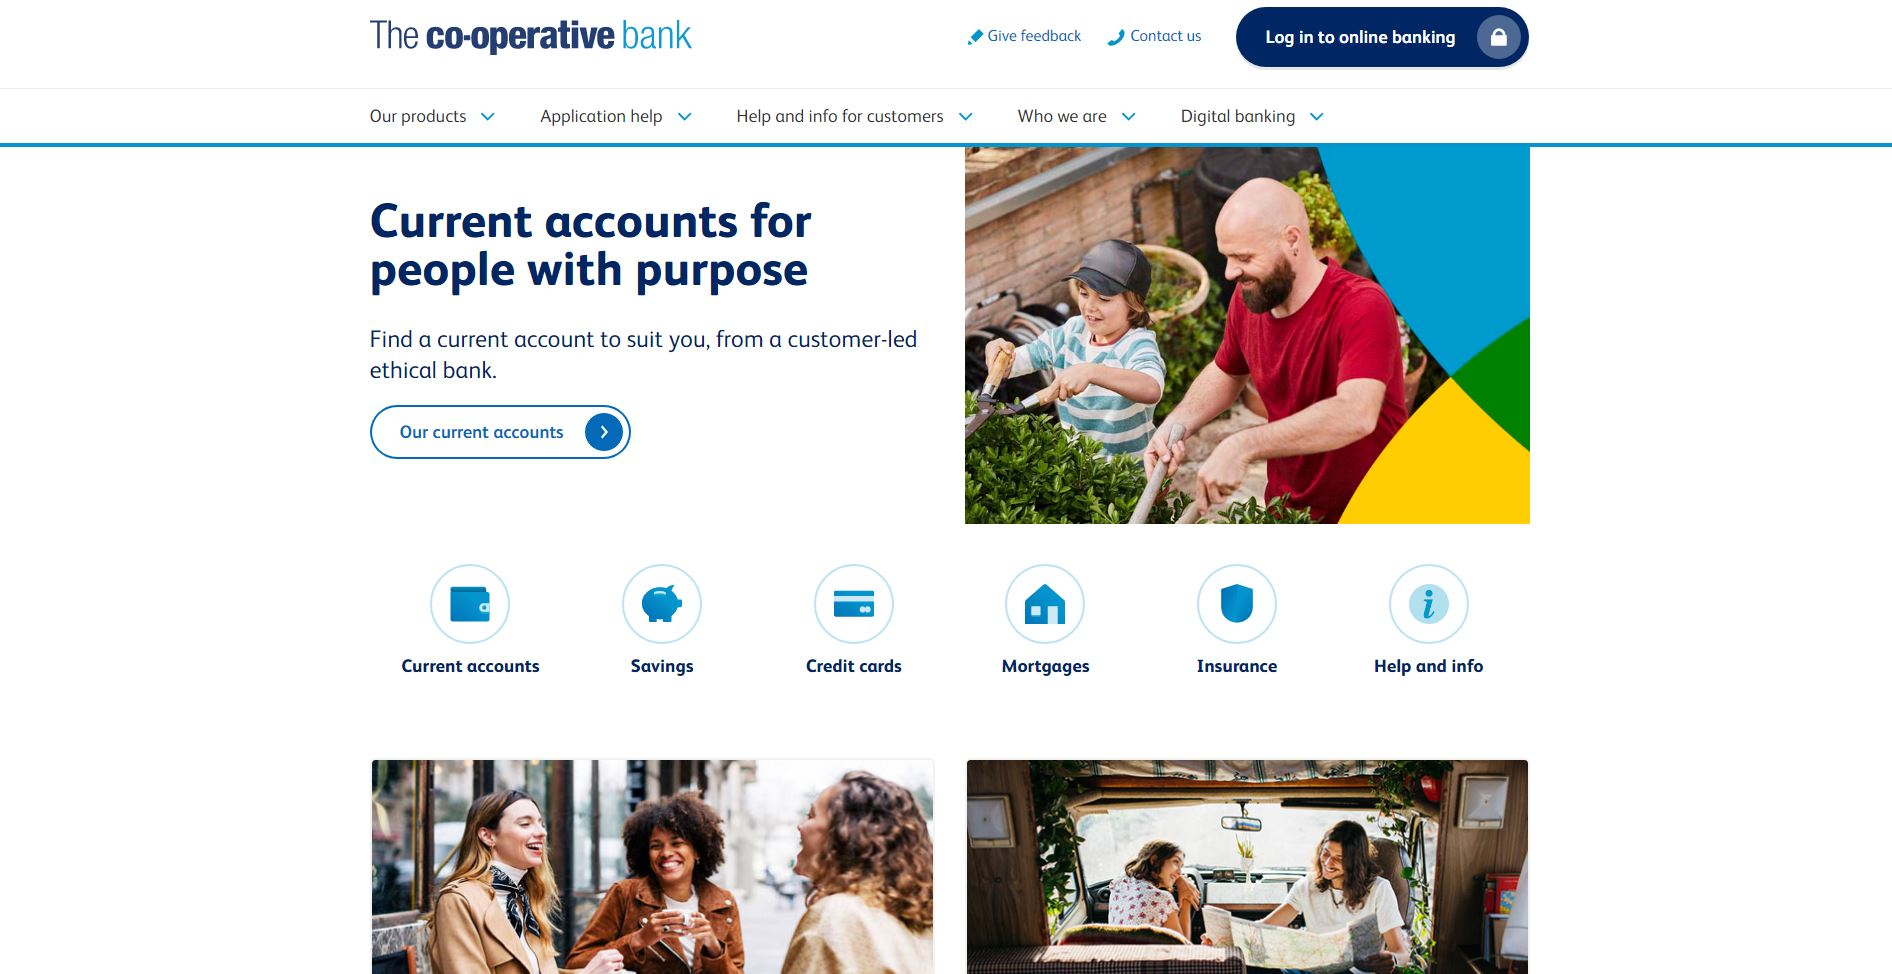 The Co-op website homepage